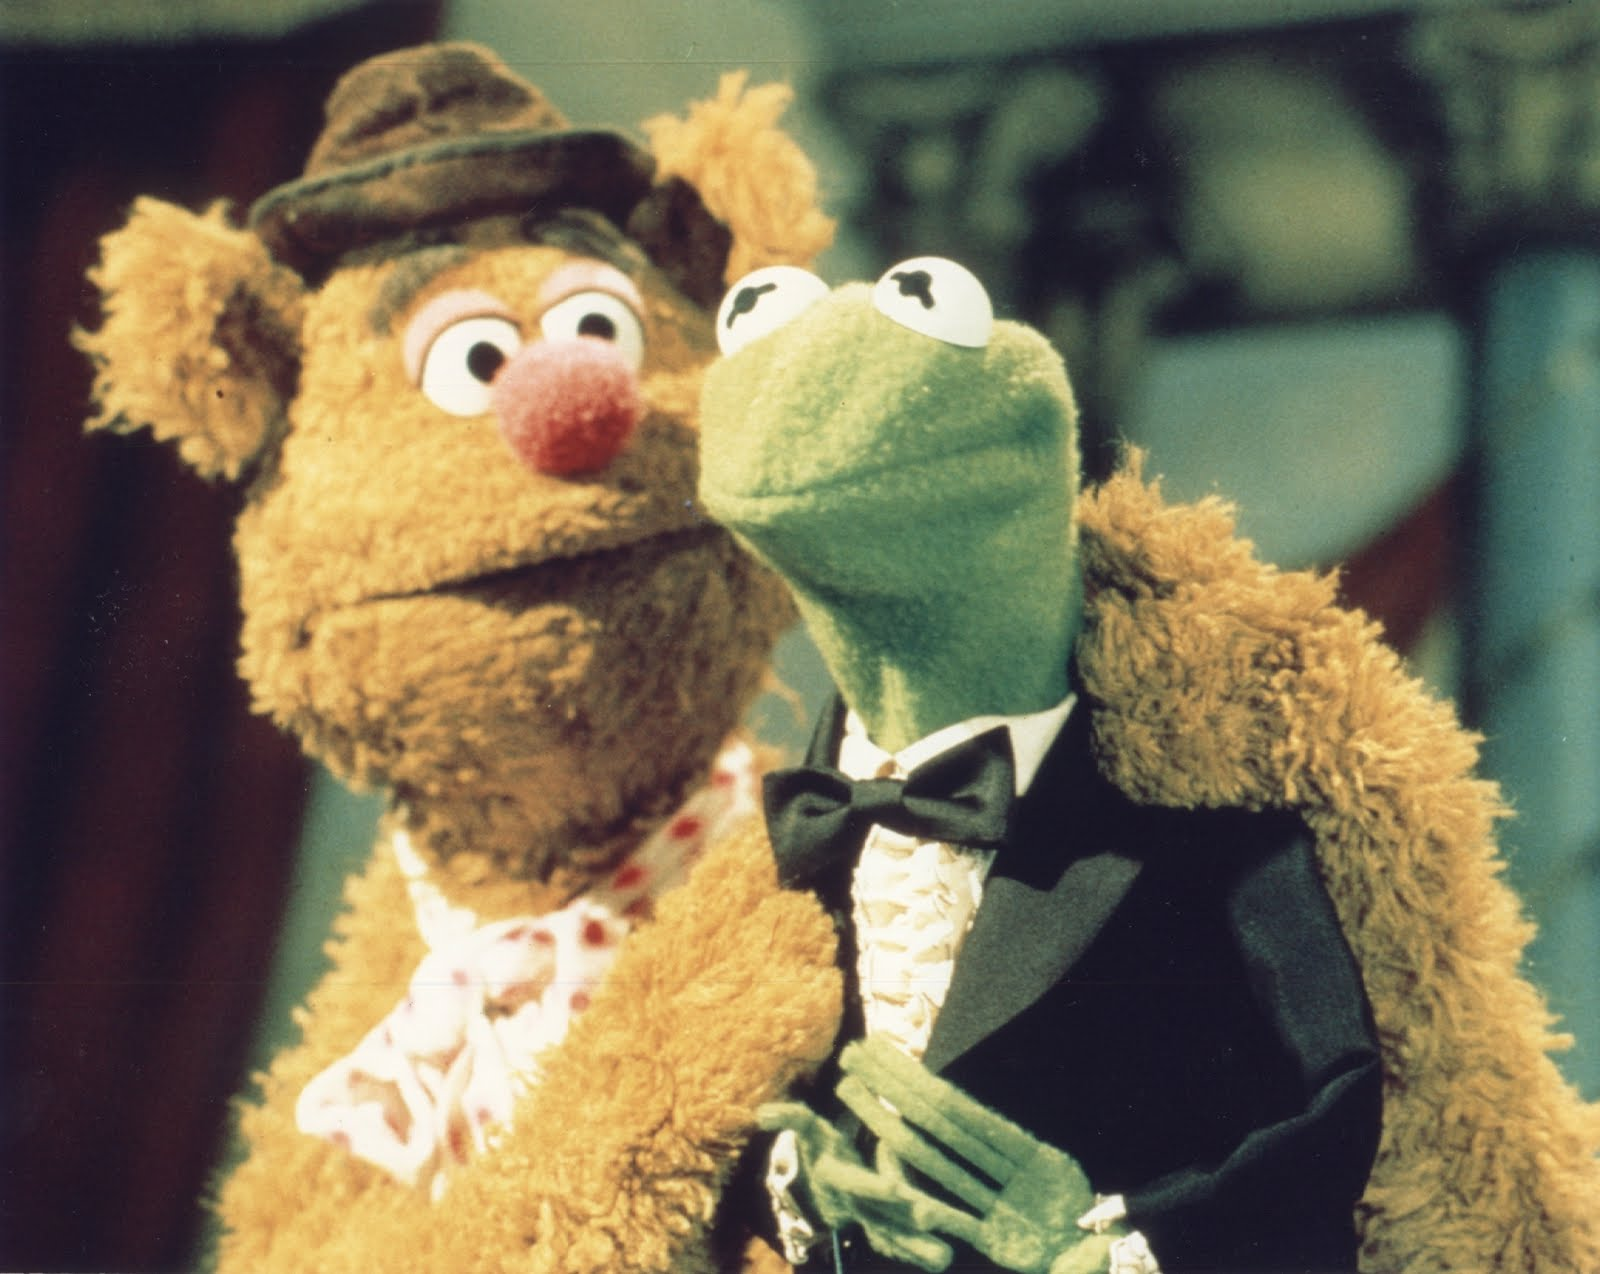 Kind Of Weekly Muppet Quotes Spotlight Kermit And Fozzie The